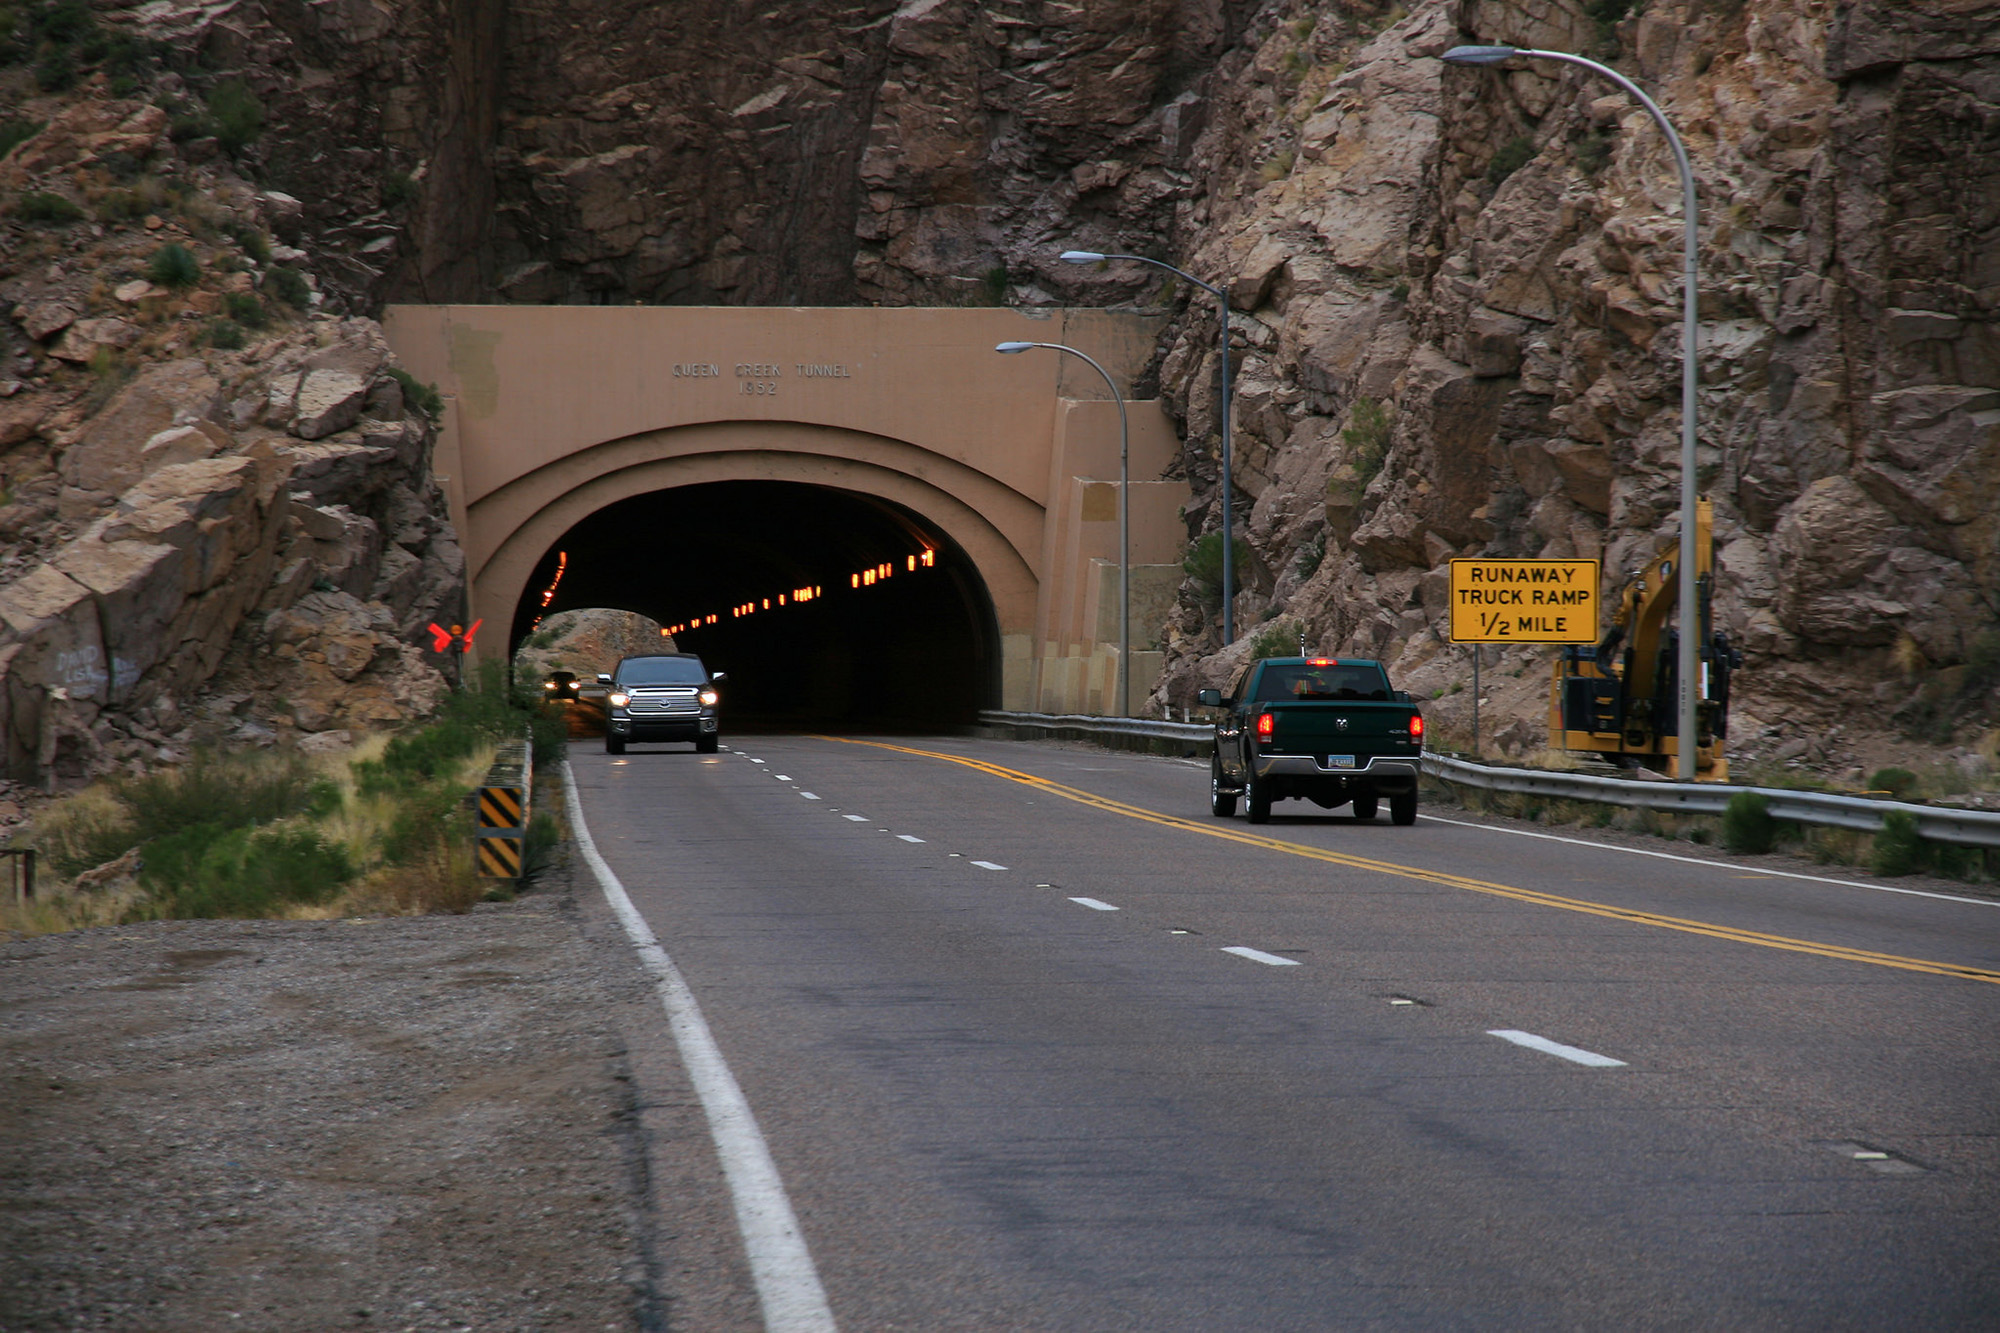 Queen Creek Tunnel on US 60 receives LED lighting system